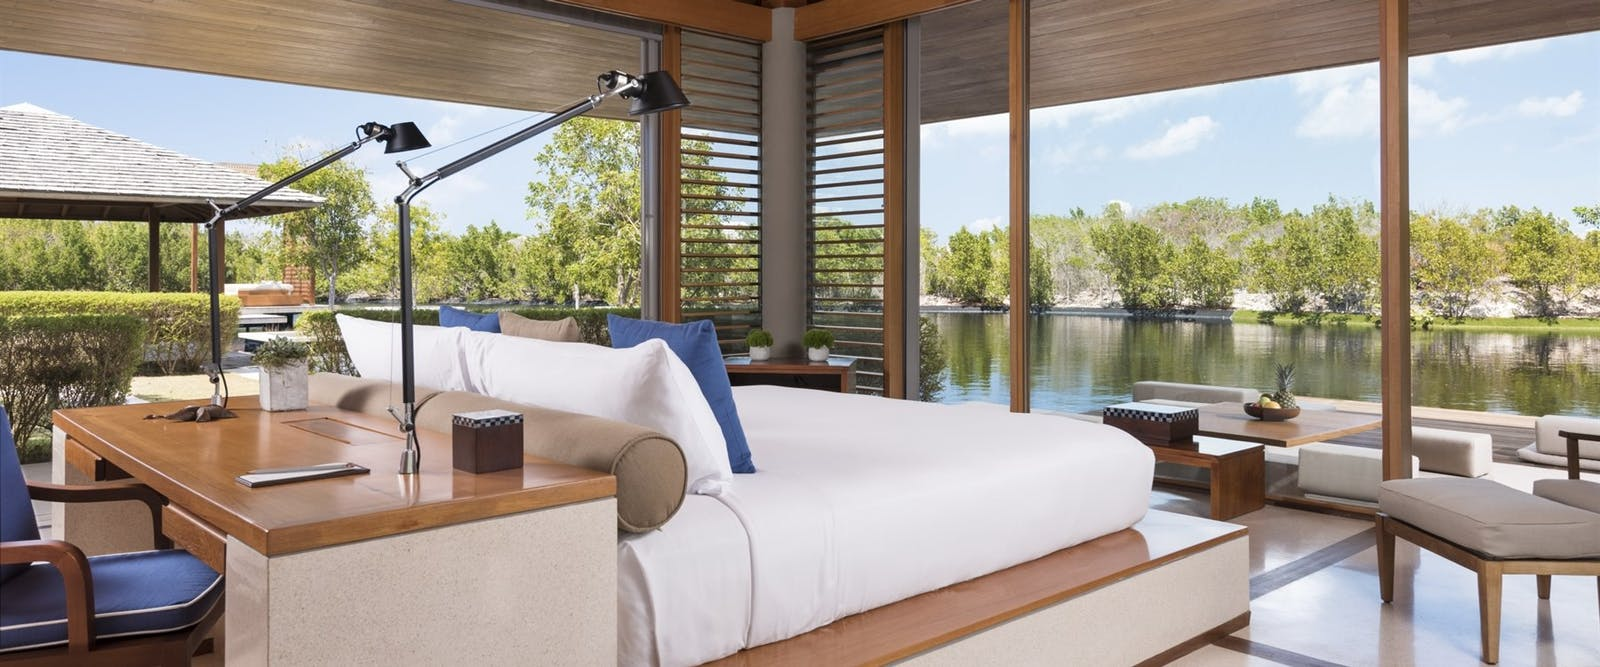 Bedroom at Amanyara, Turks and Caicos